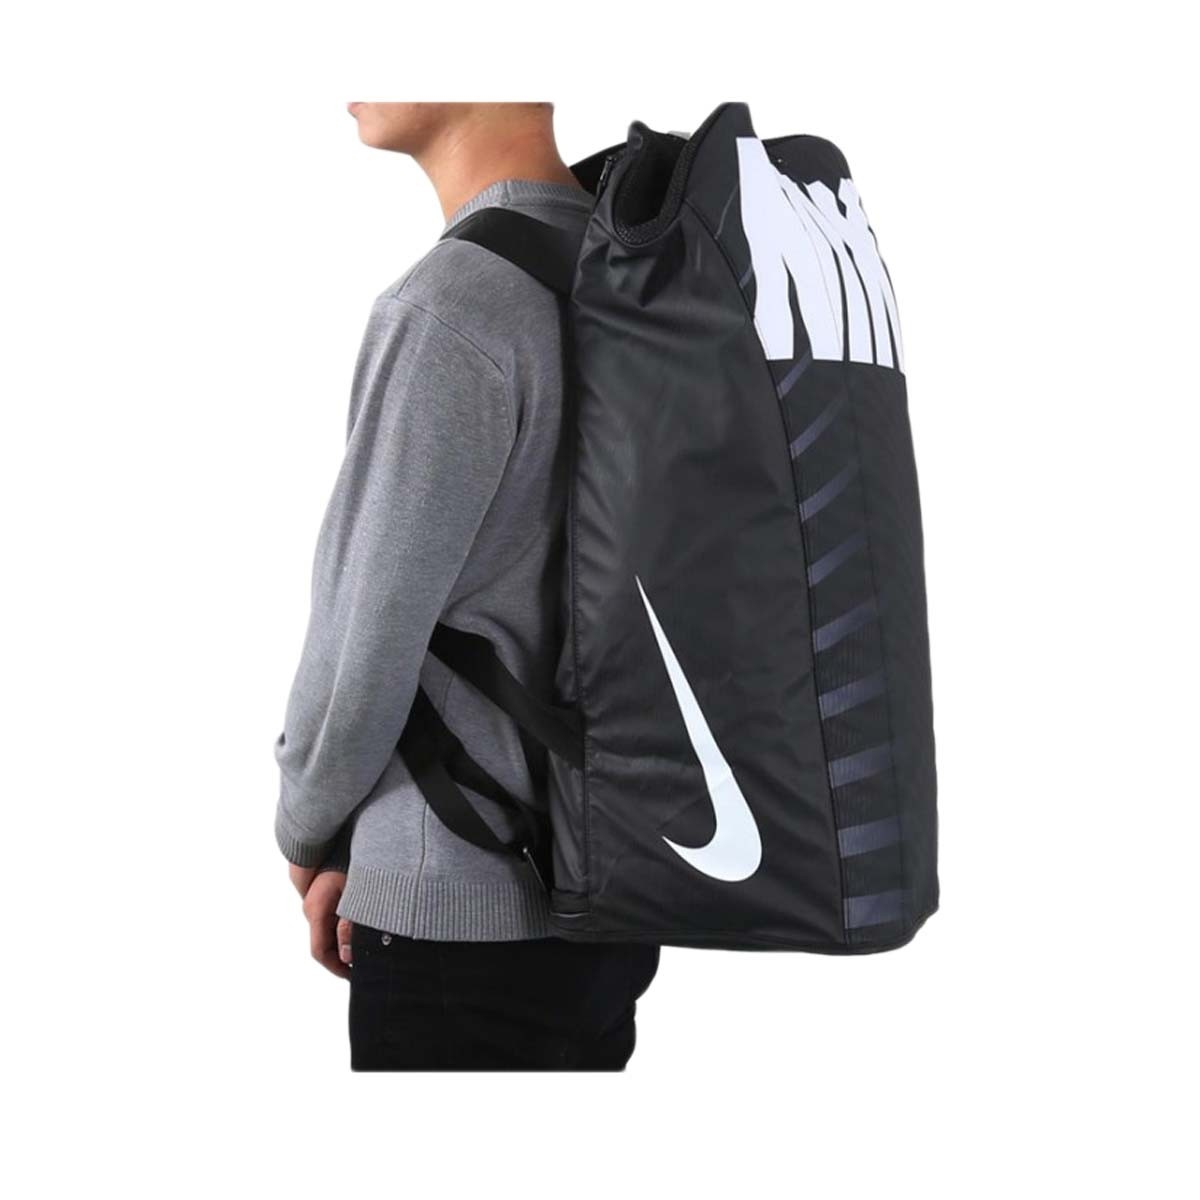 b574364678 Nike Alpha Adapt Cross Body Σάκος unisex - BA5181-010